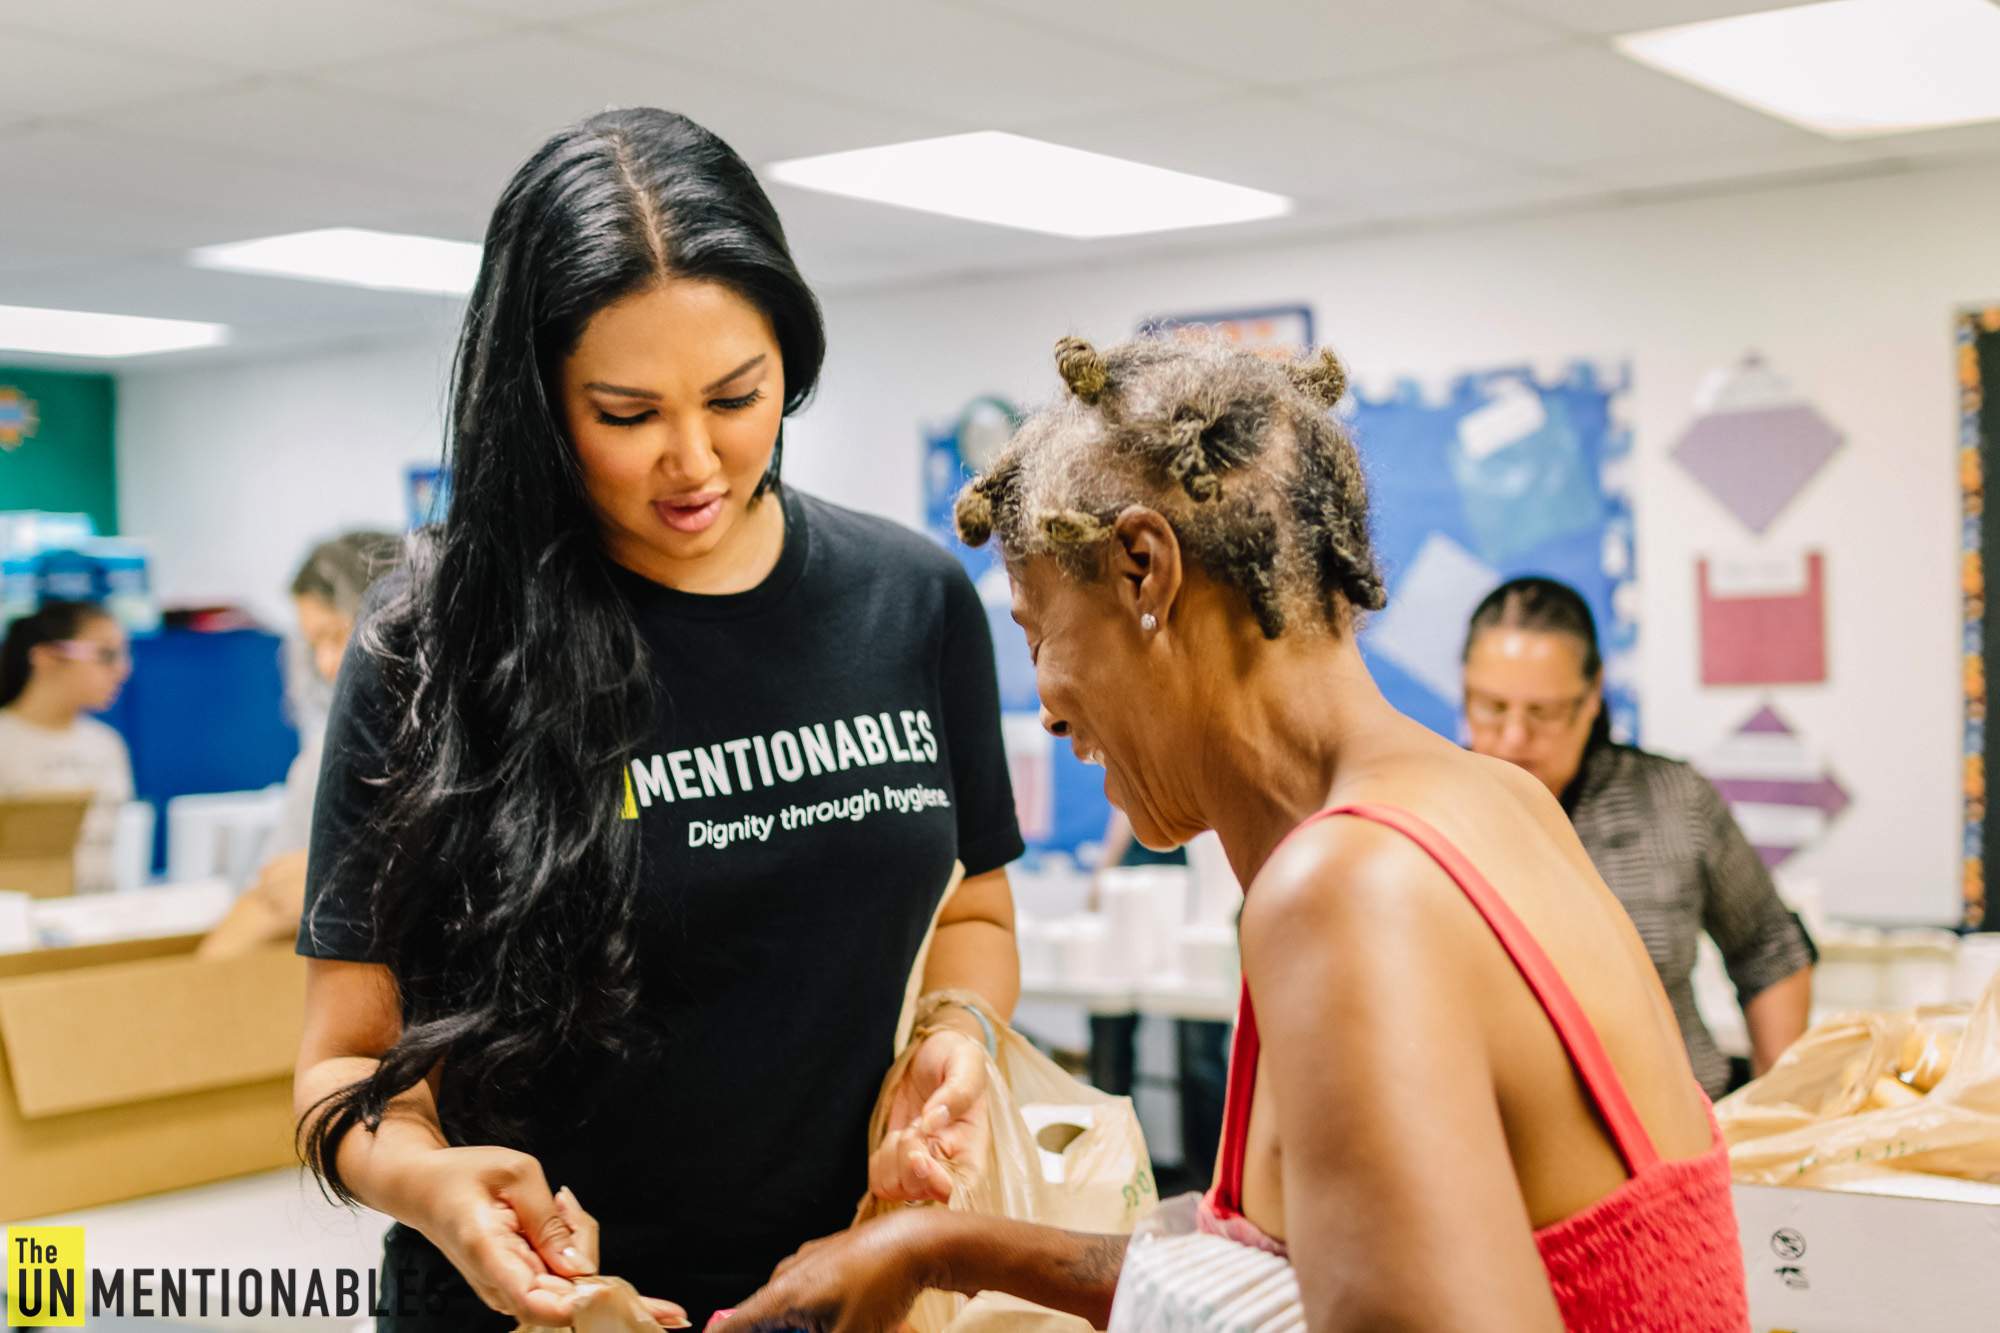 Kimora Lee Simmons helping out for the nonprofit The Unmentionables.